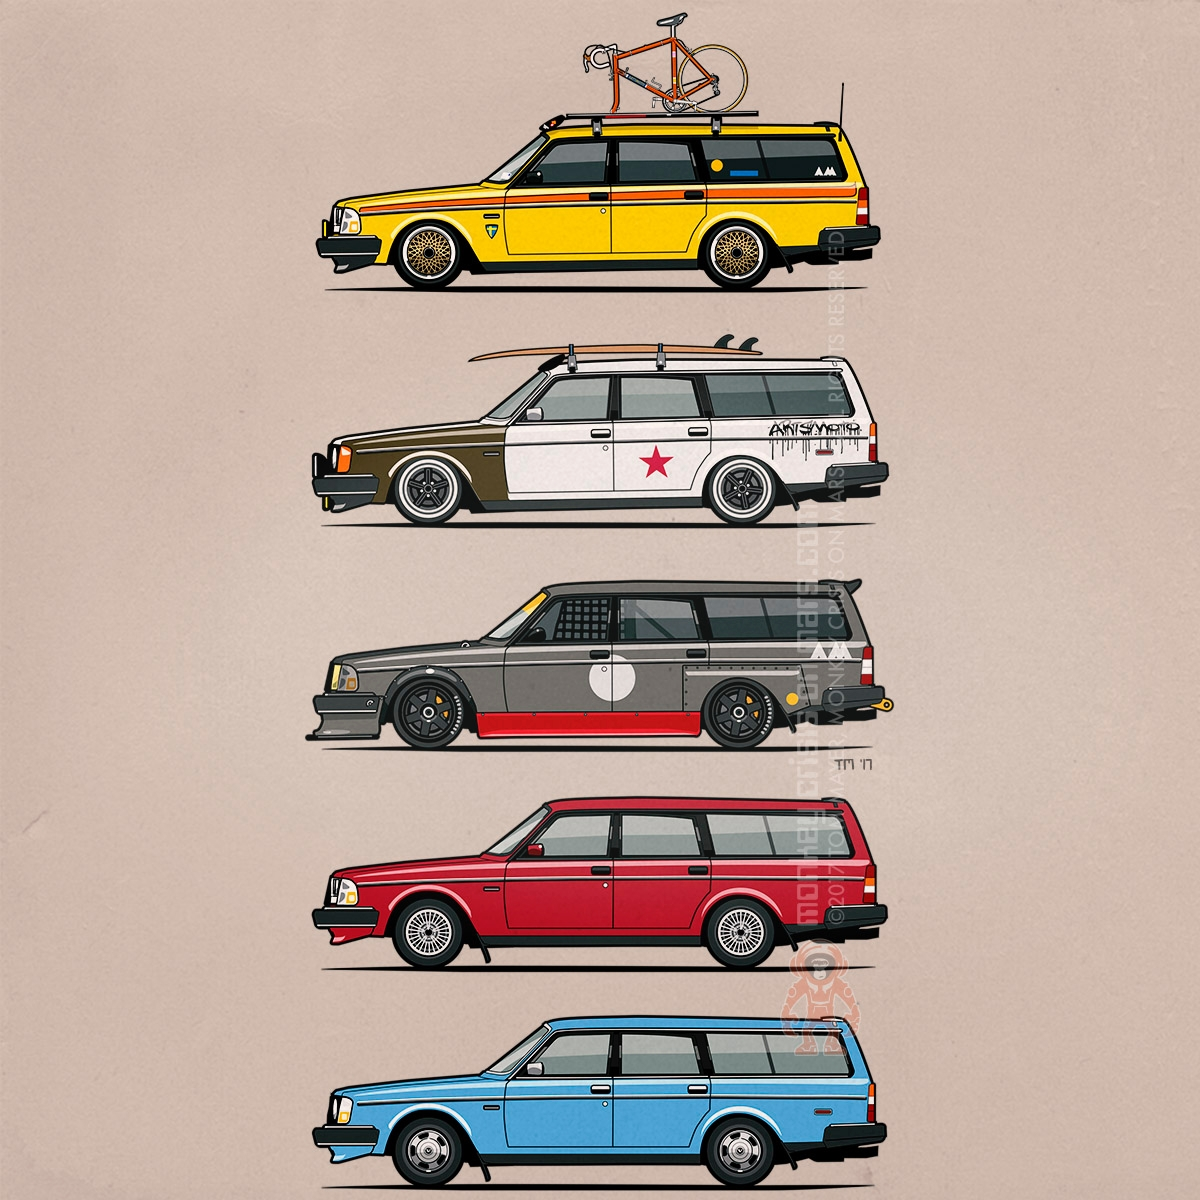 Stack Volvo 240/245 wagons Tom  - monkeycrisisonmars | ello